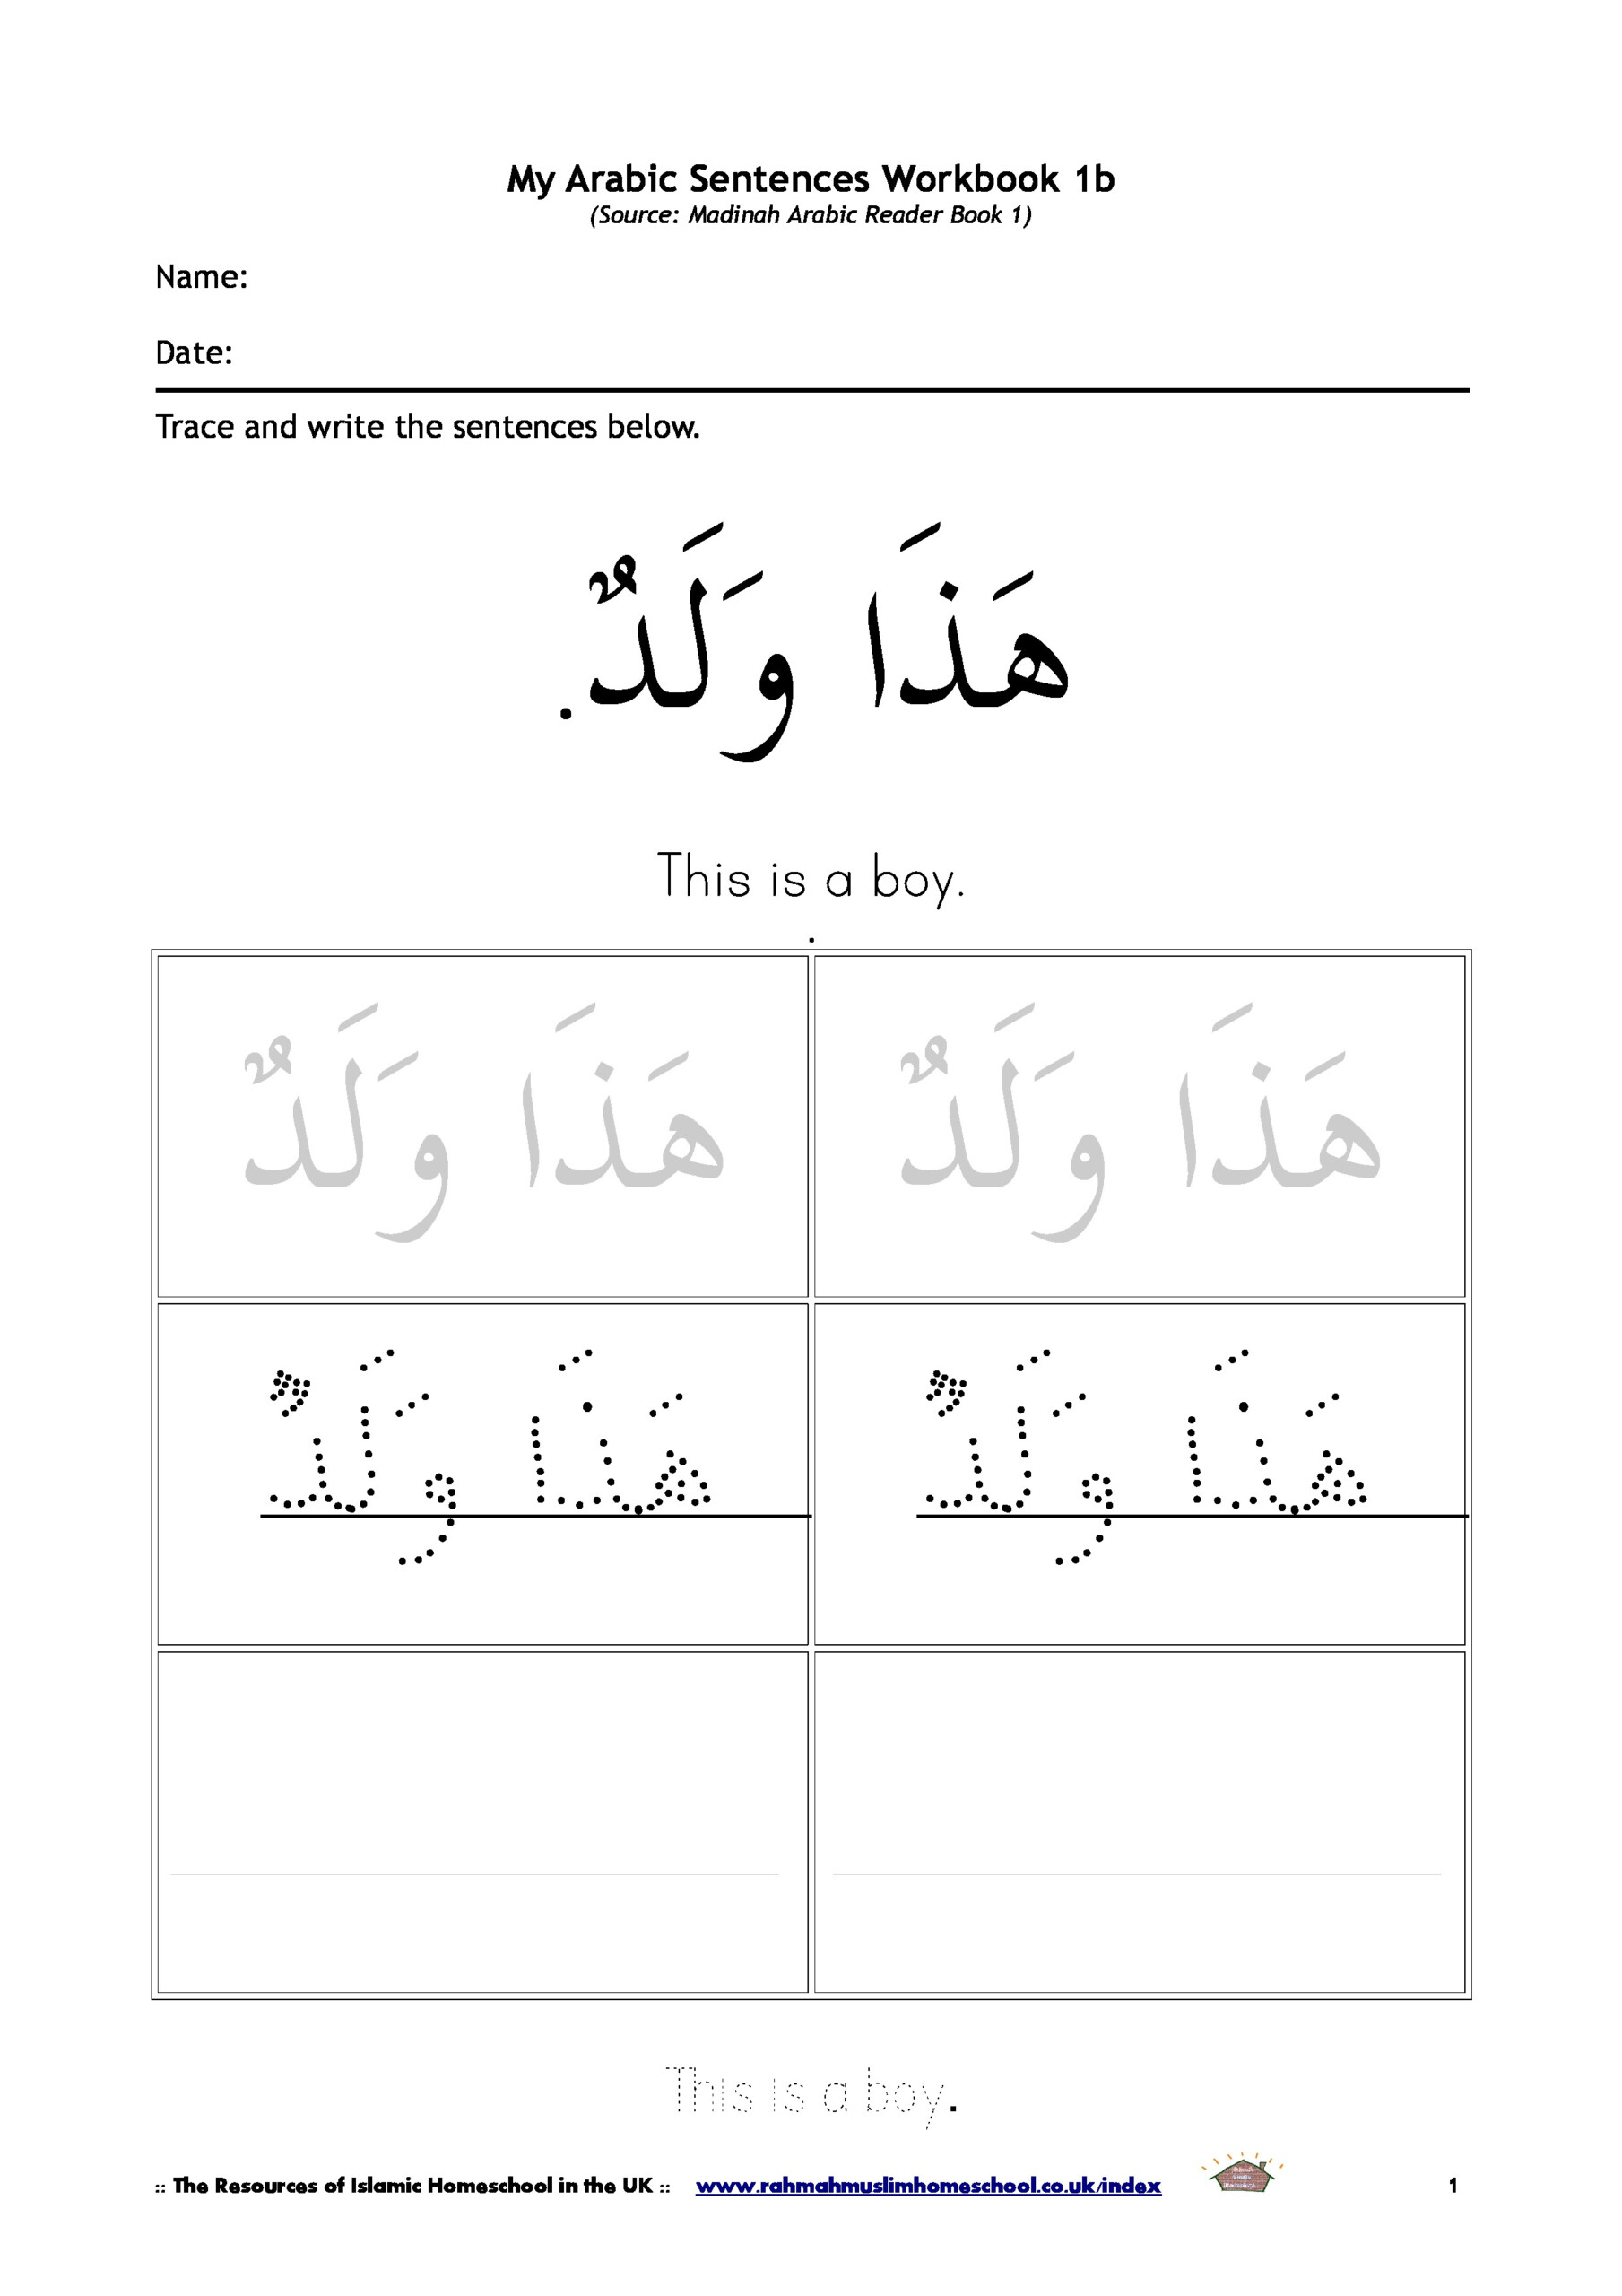 Basic Vocabulary And Short Sentences In Arabic For Kids 1B